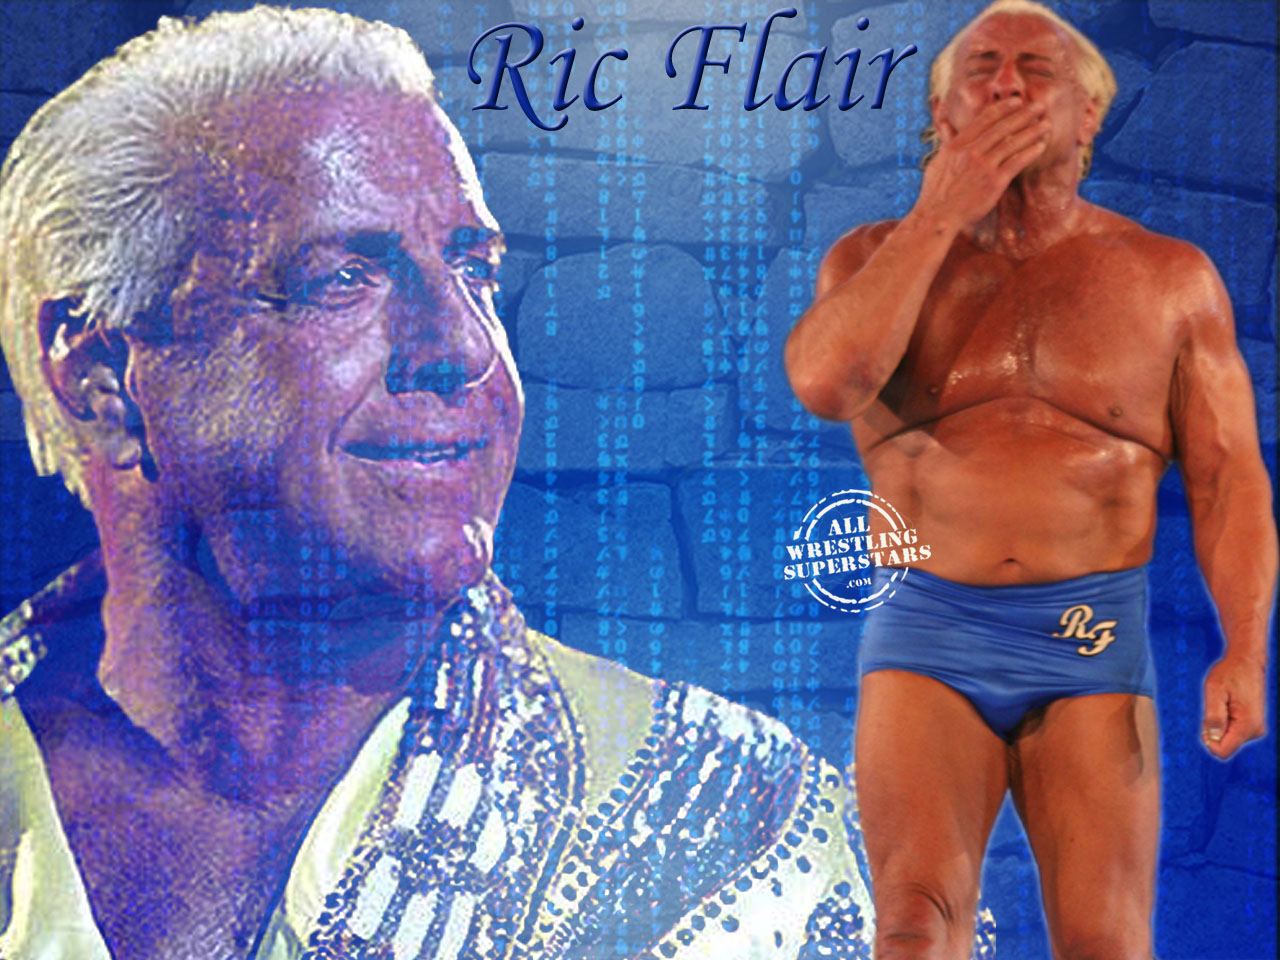 1280x960 - Ric Flair Wallpapers 15